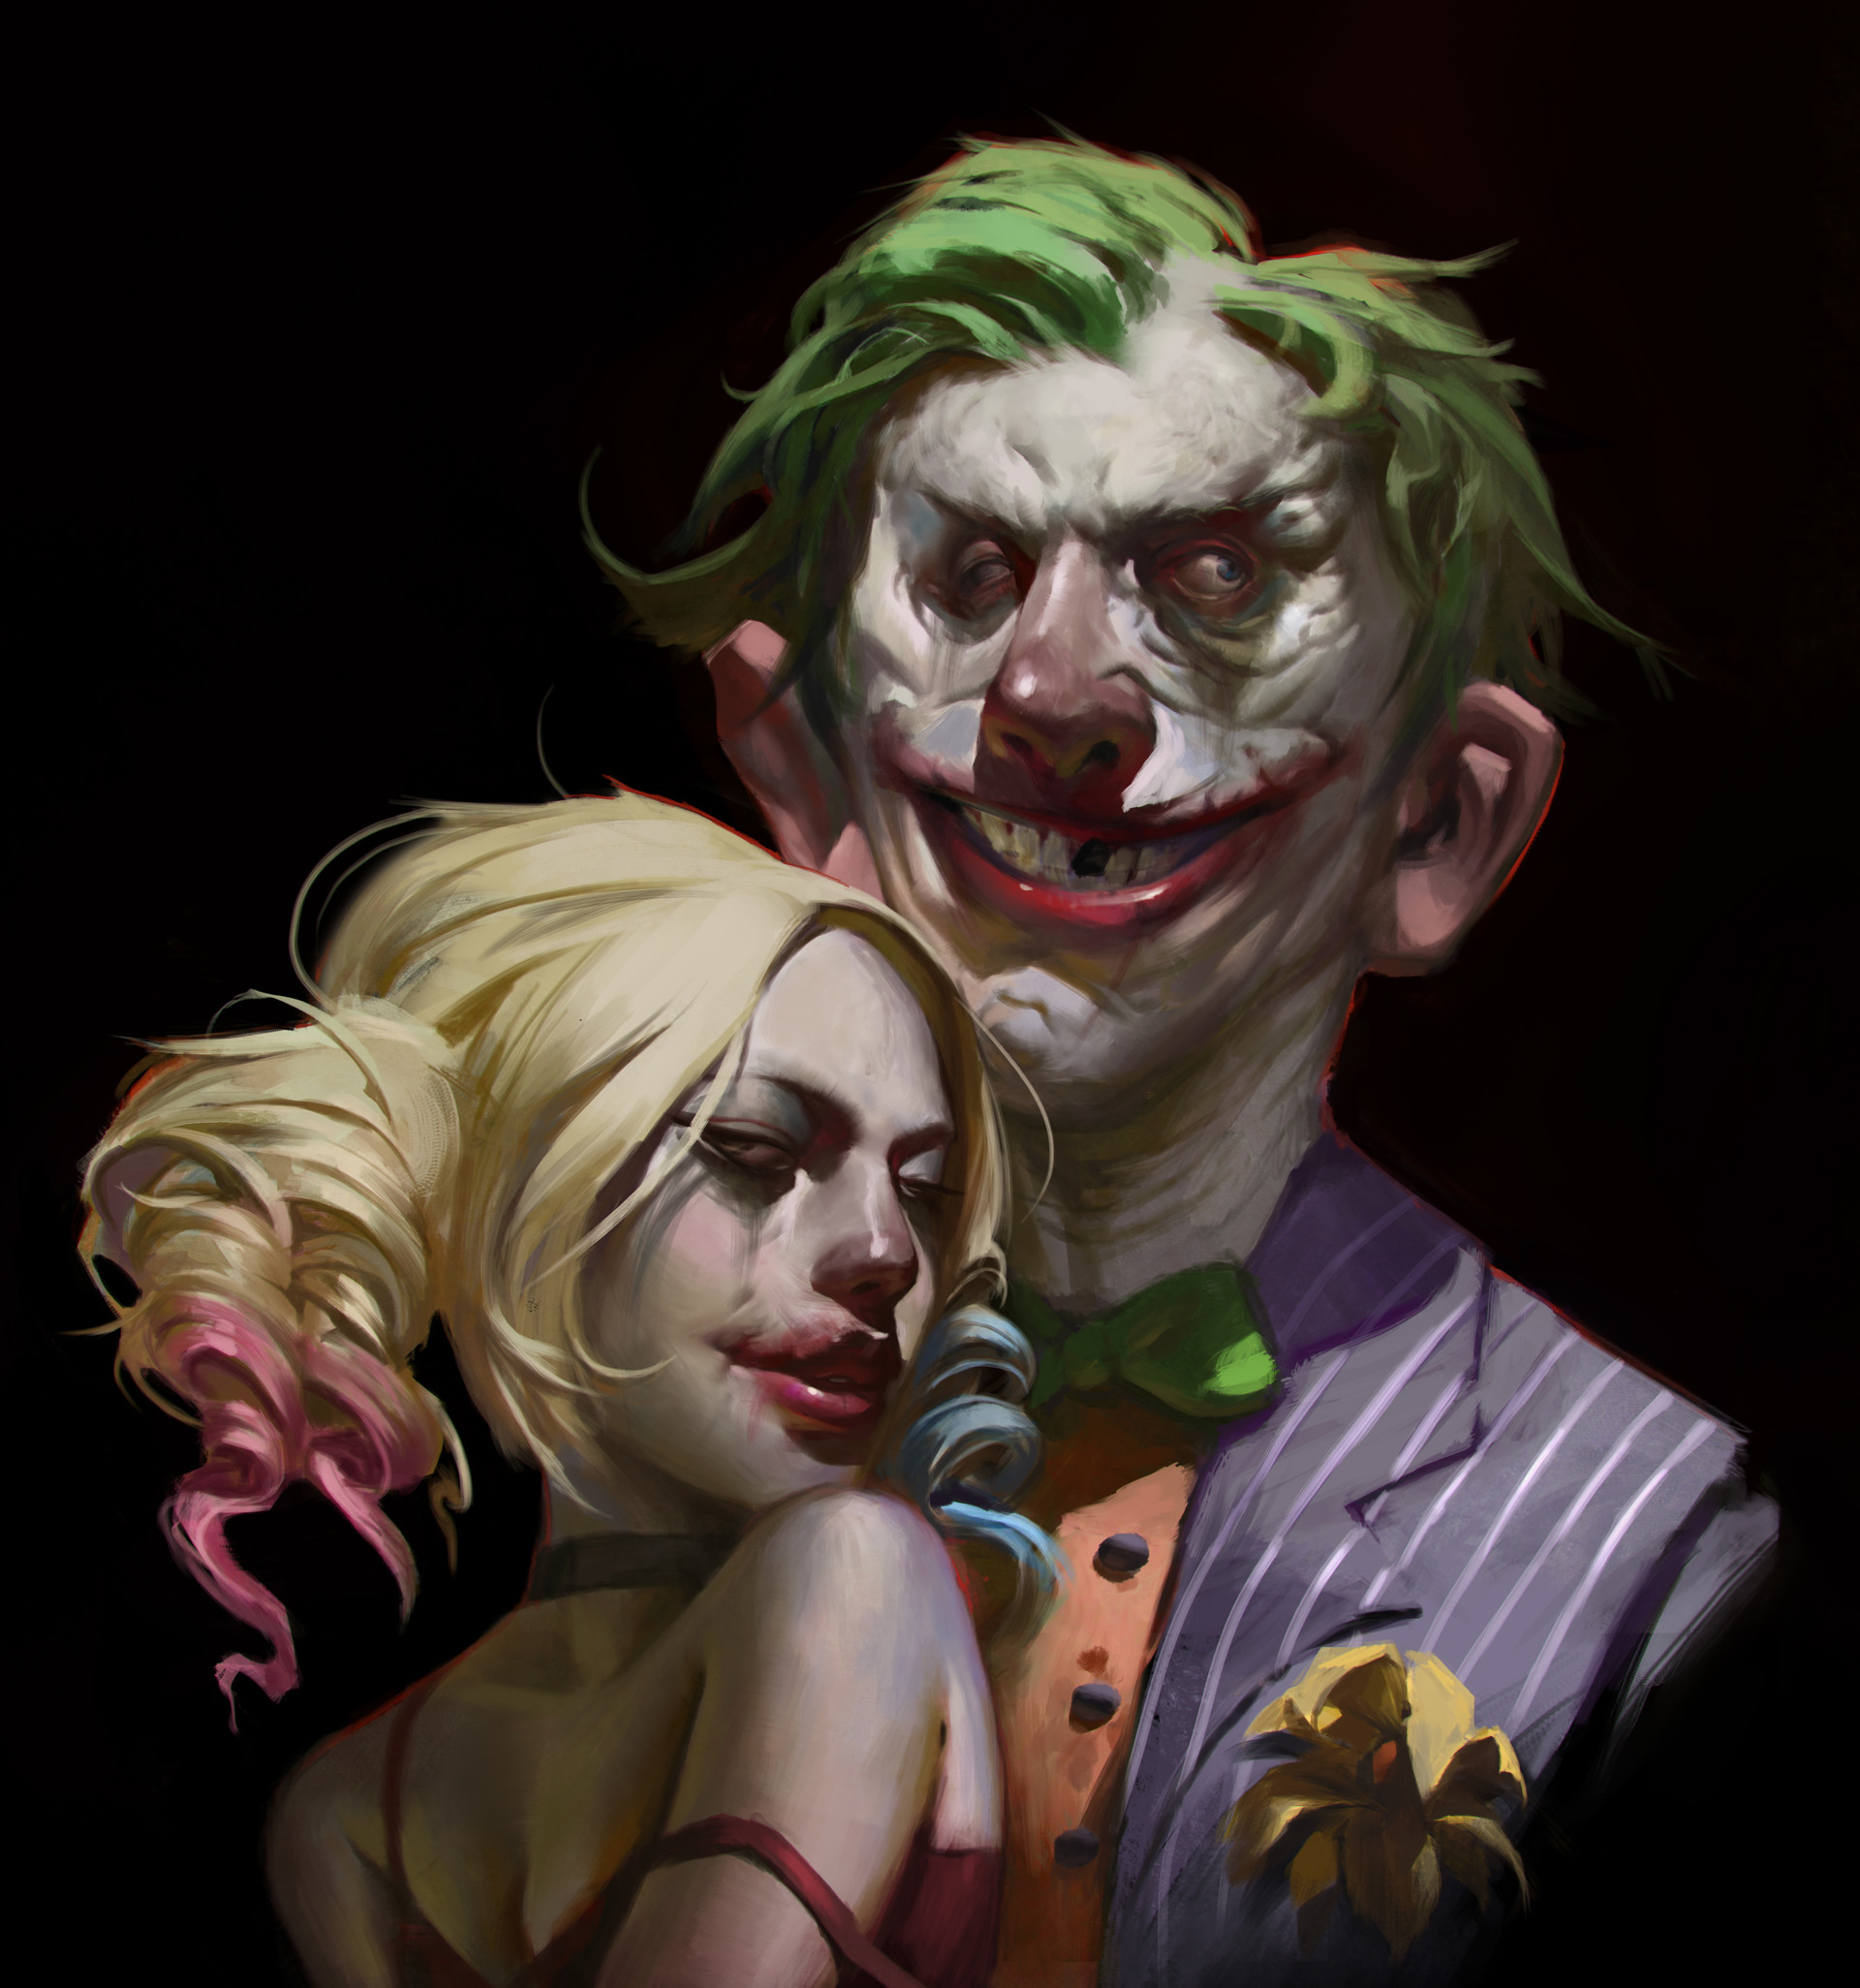 interesting-and-different-take-on-the-joker-and-harley-quinn-in-fan-art2